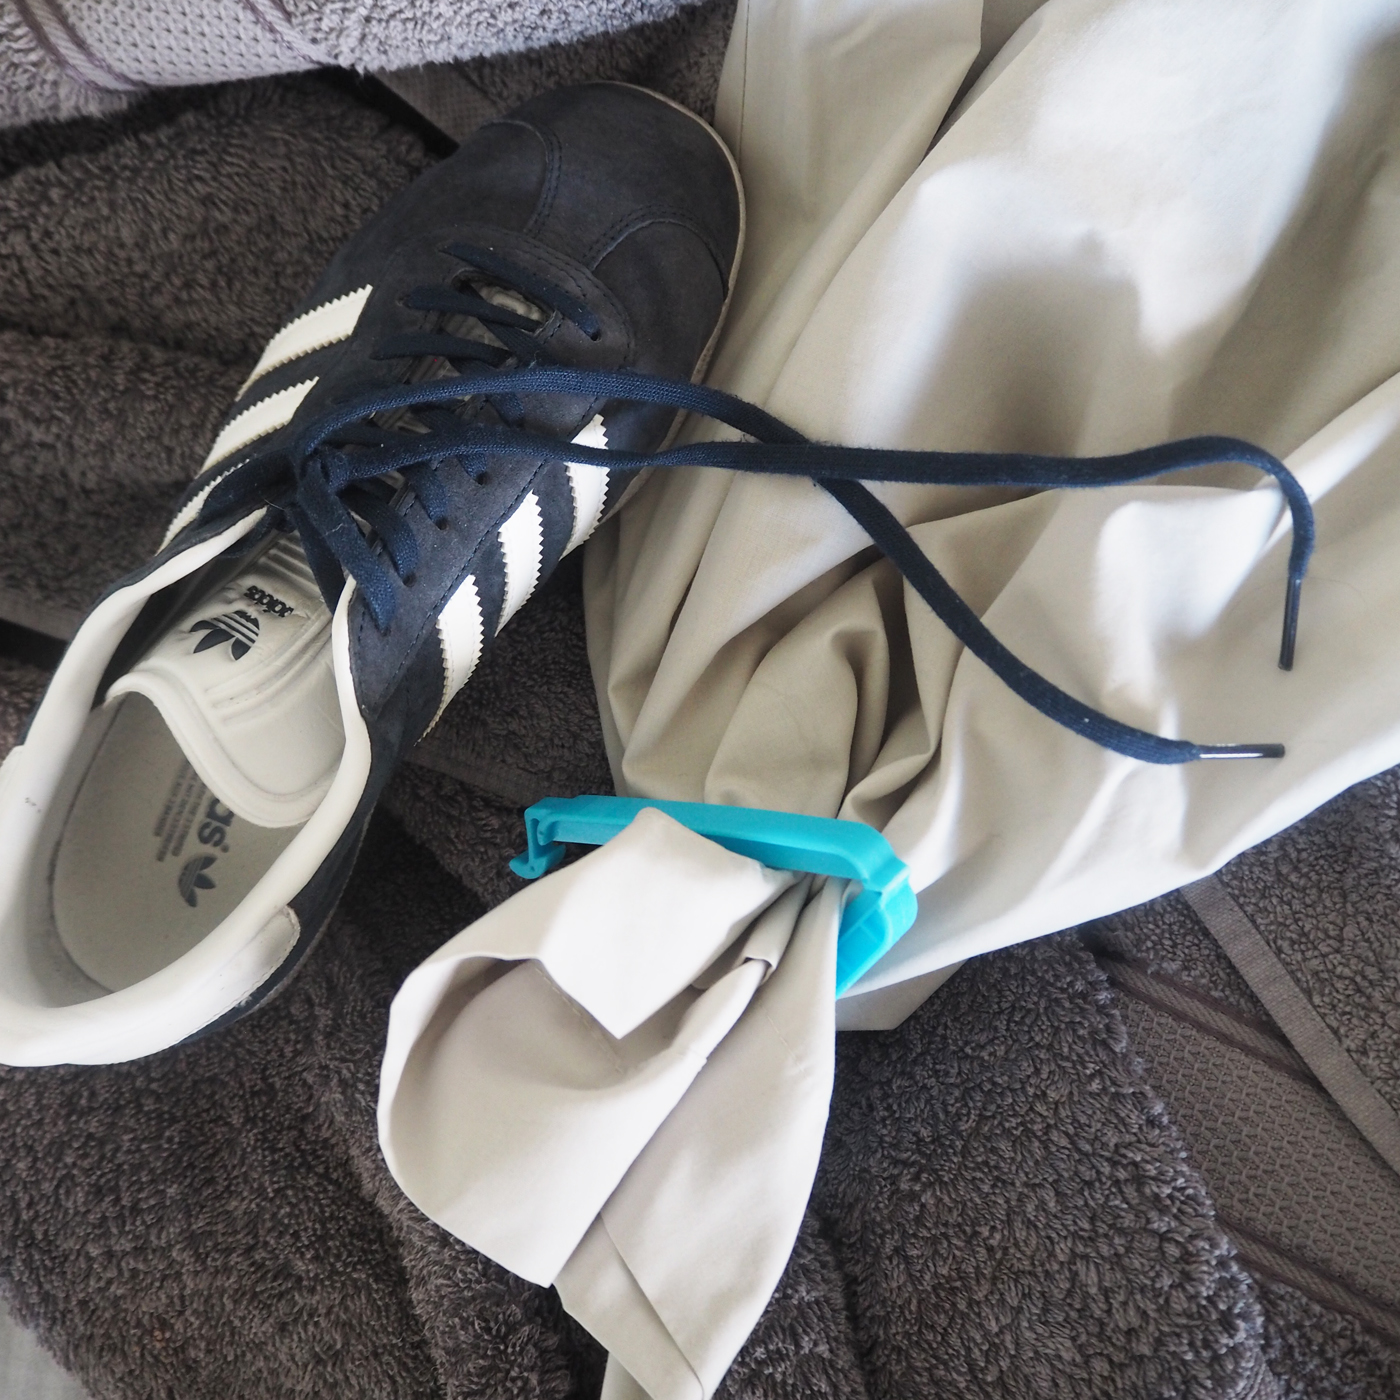 Clean your trainers